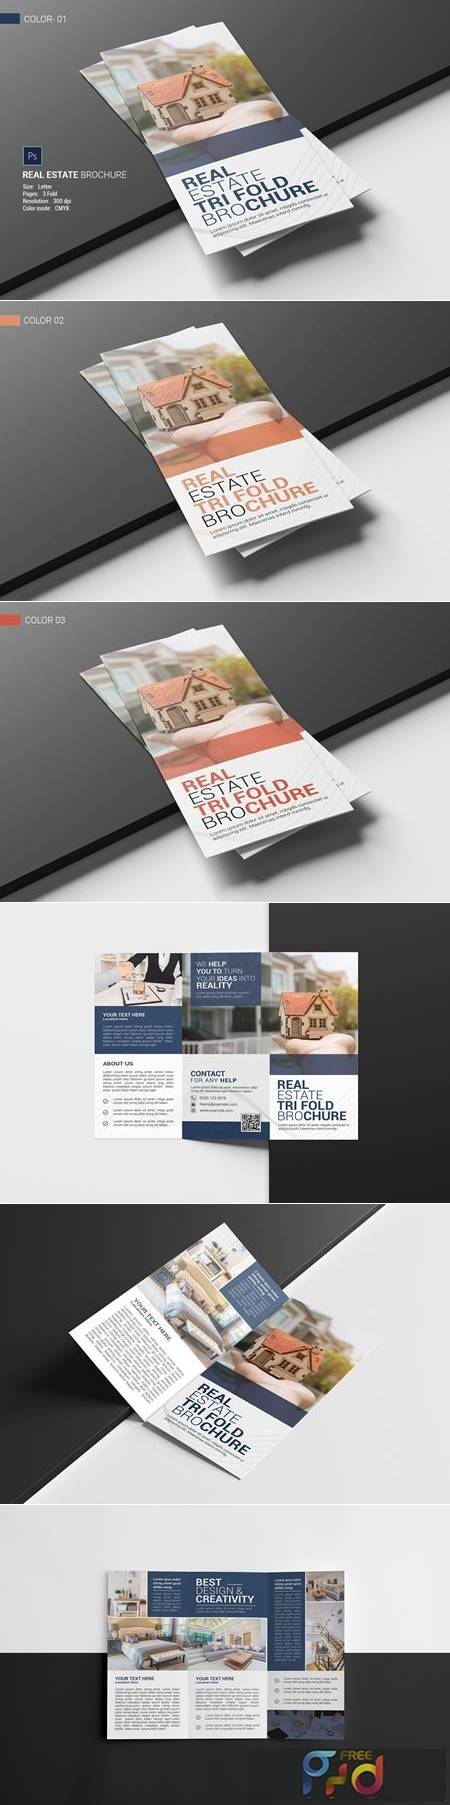 Real Estate Trifold Brochure 4686410 1